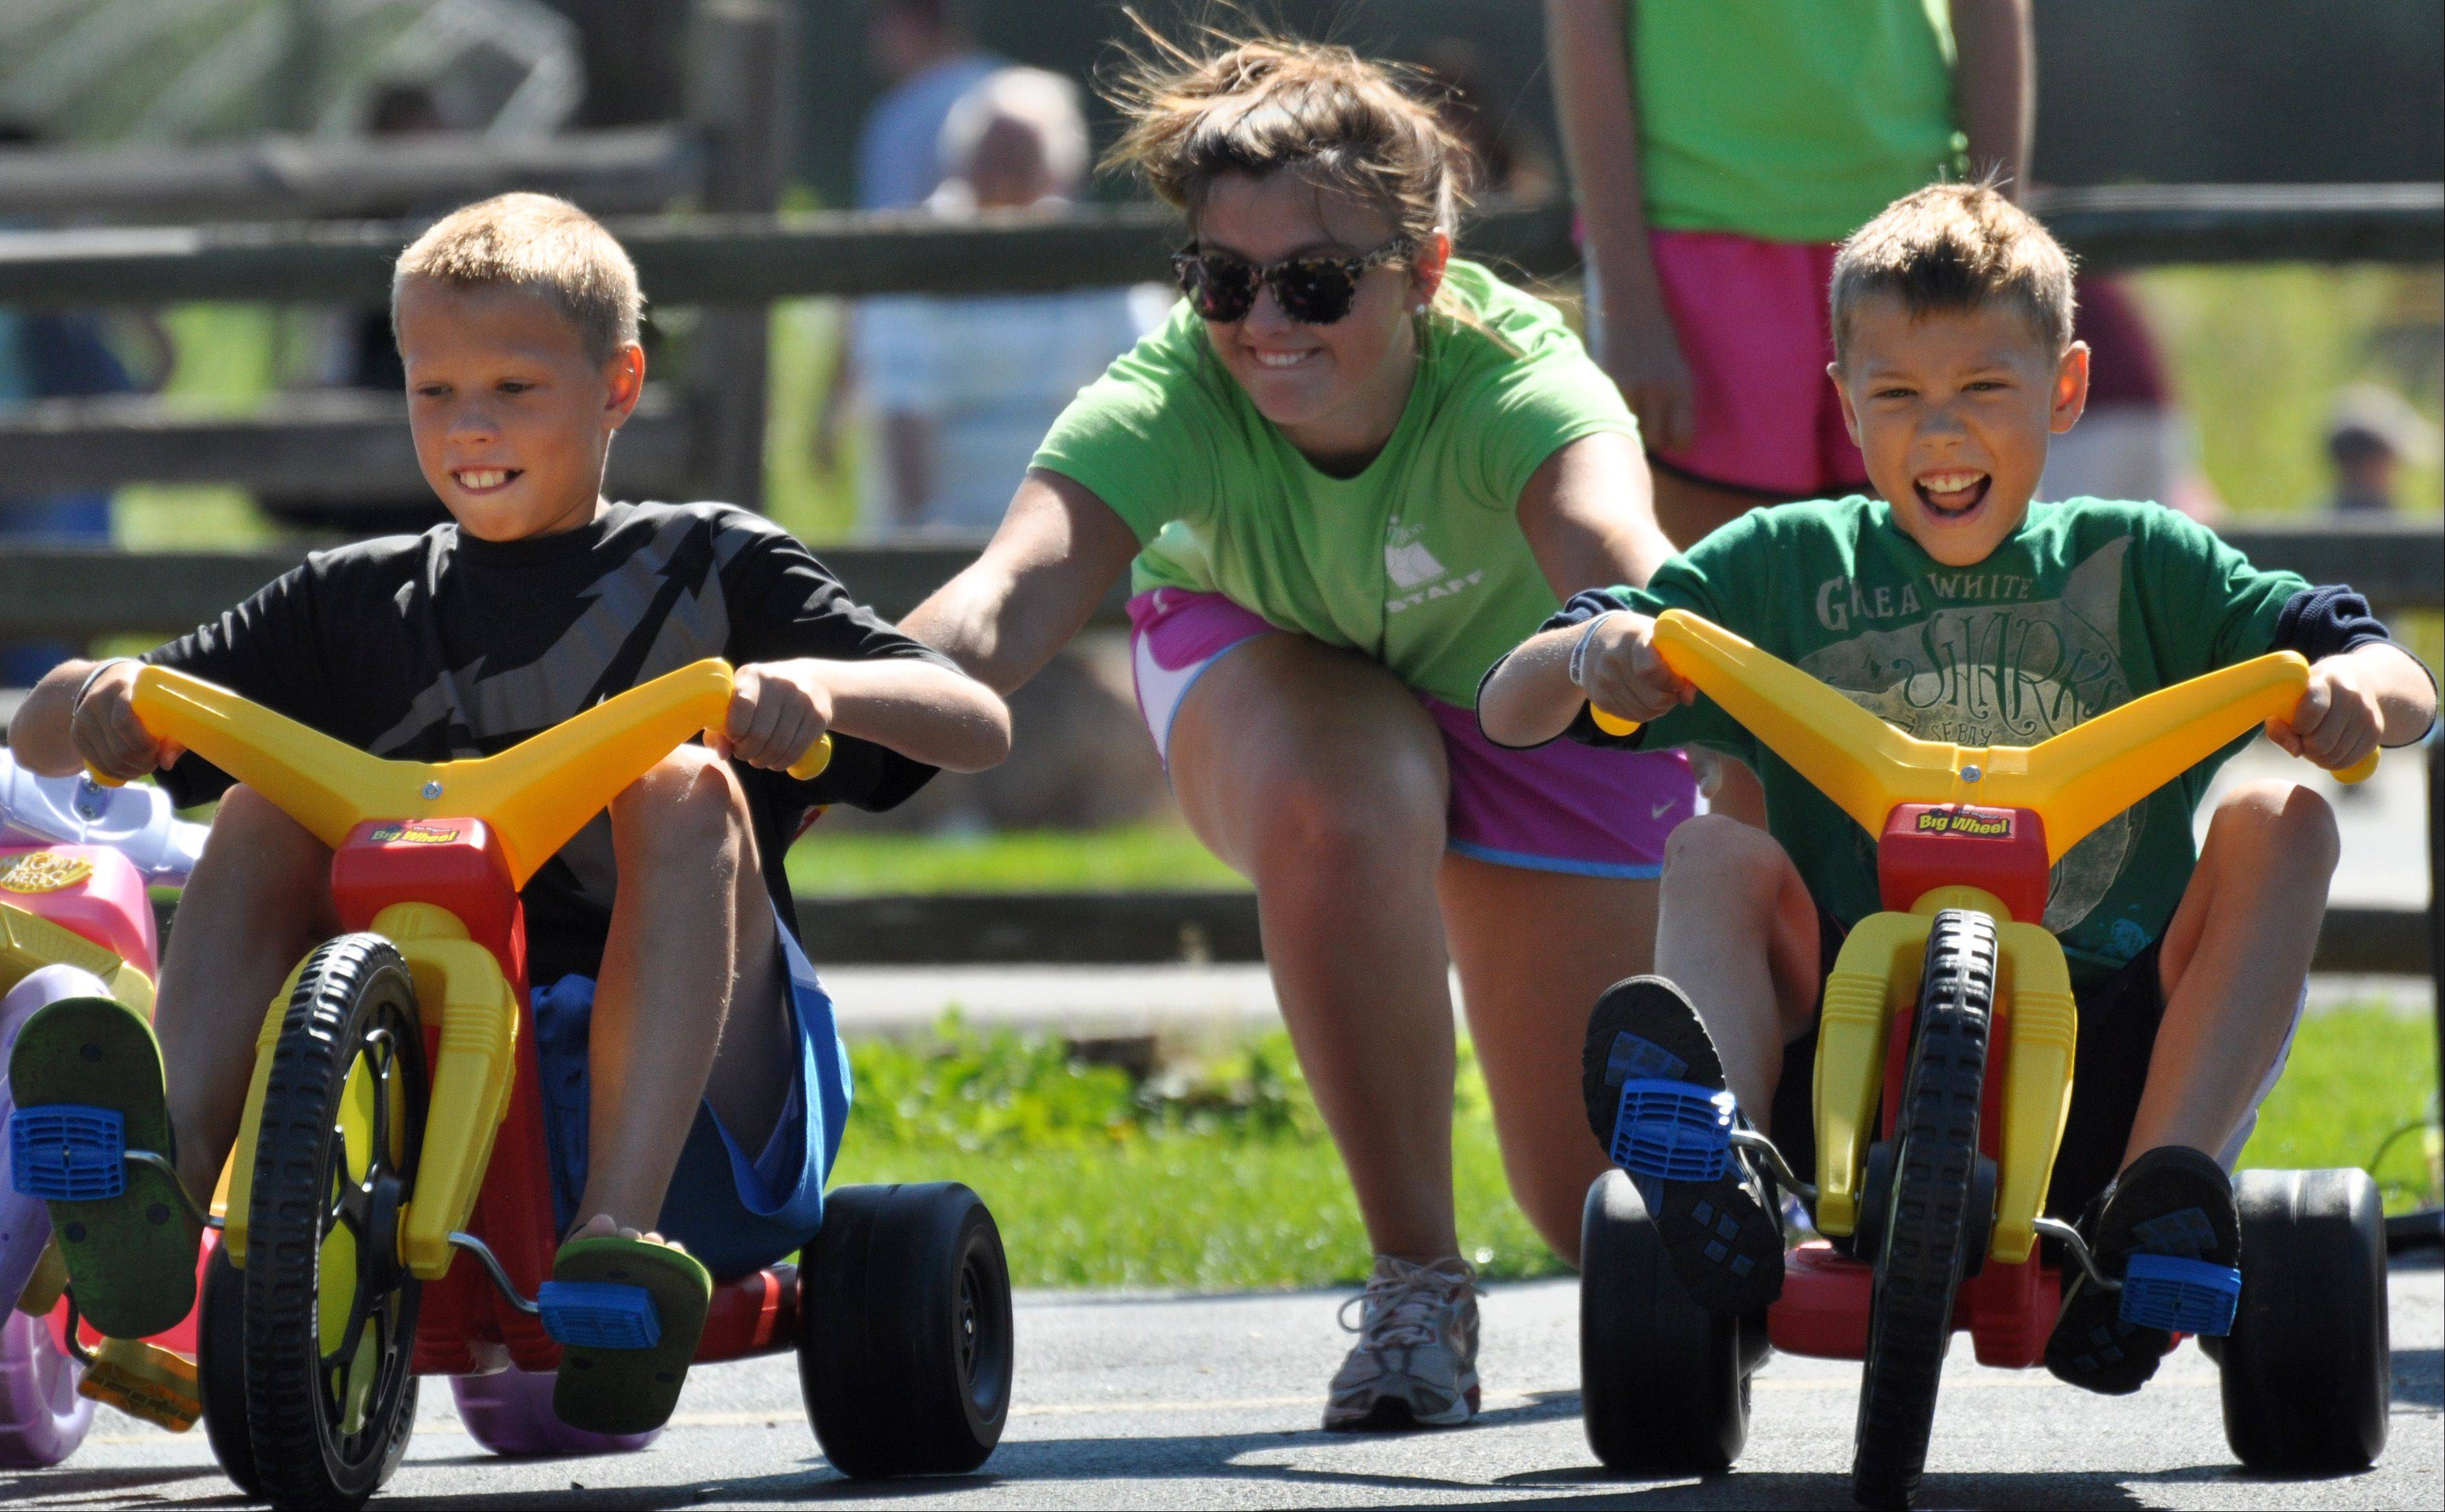 Left, David Krauklis, of Hampshire, and brother Johnny get a push start from volunteer Emma Raider, of Barrington during the 14th annual Big Trucks event in Barrington Saturday, August 3.